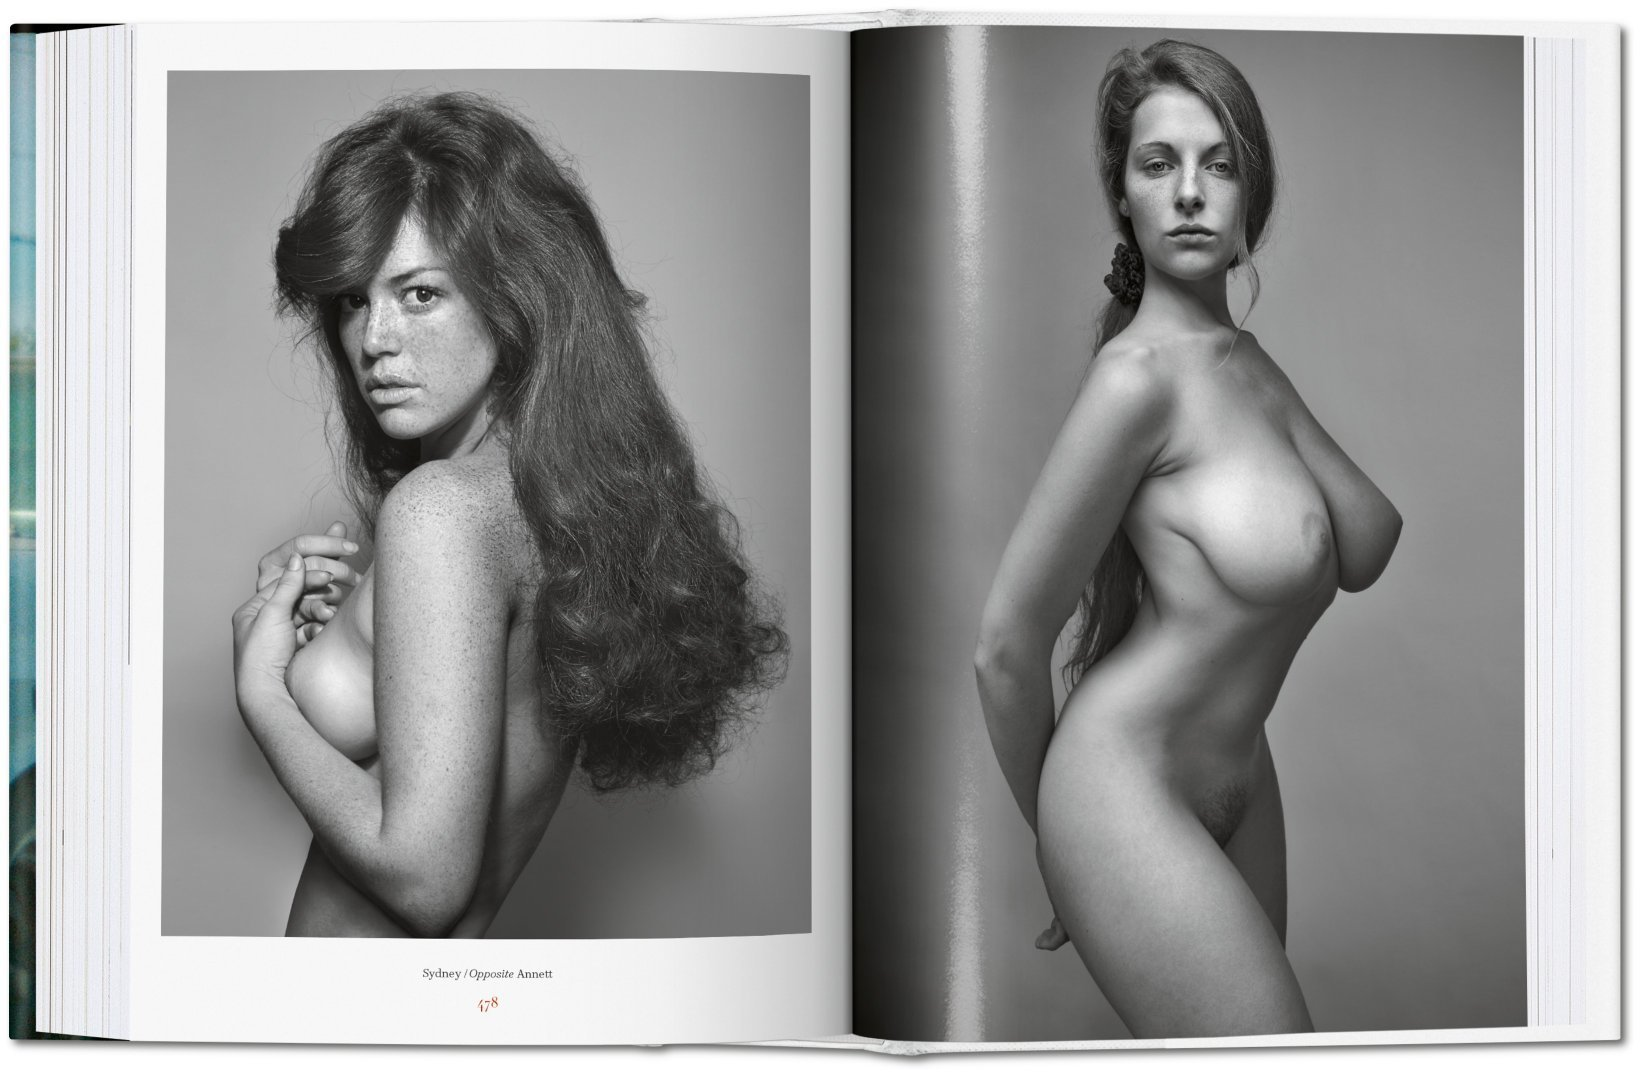 Buch, The New Erotic Photography Collection - TASCHEN - Bild 7